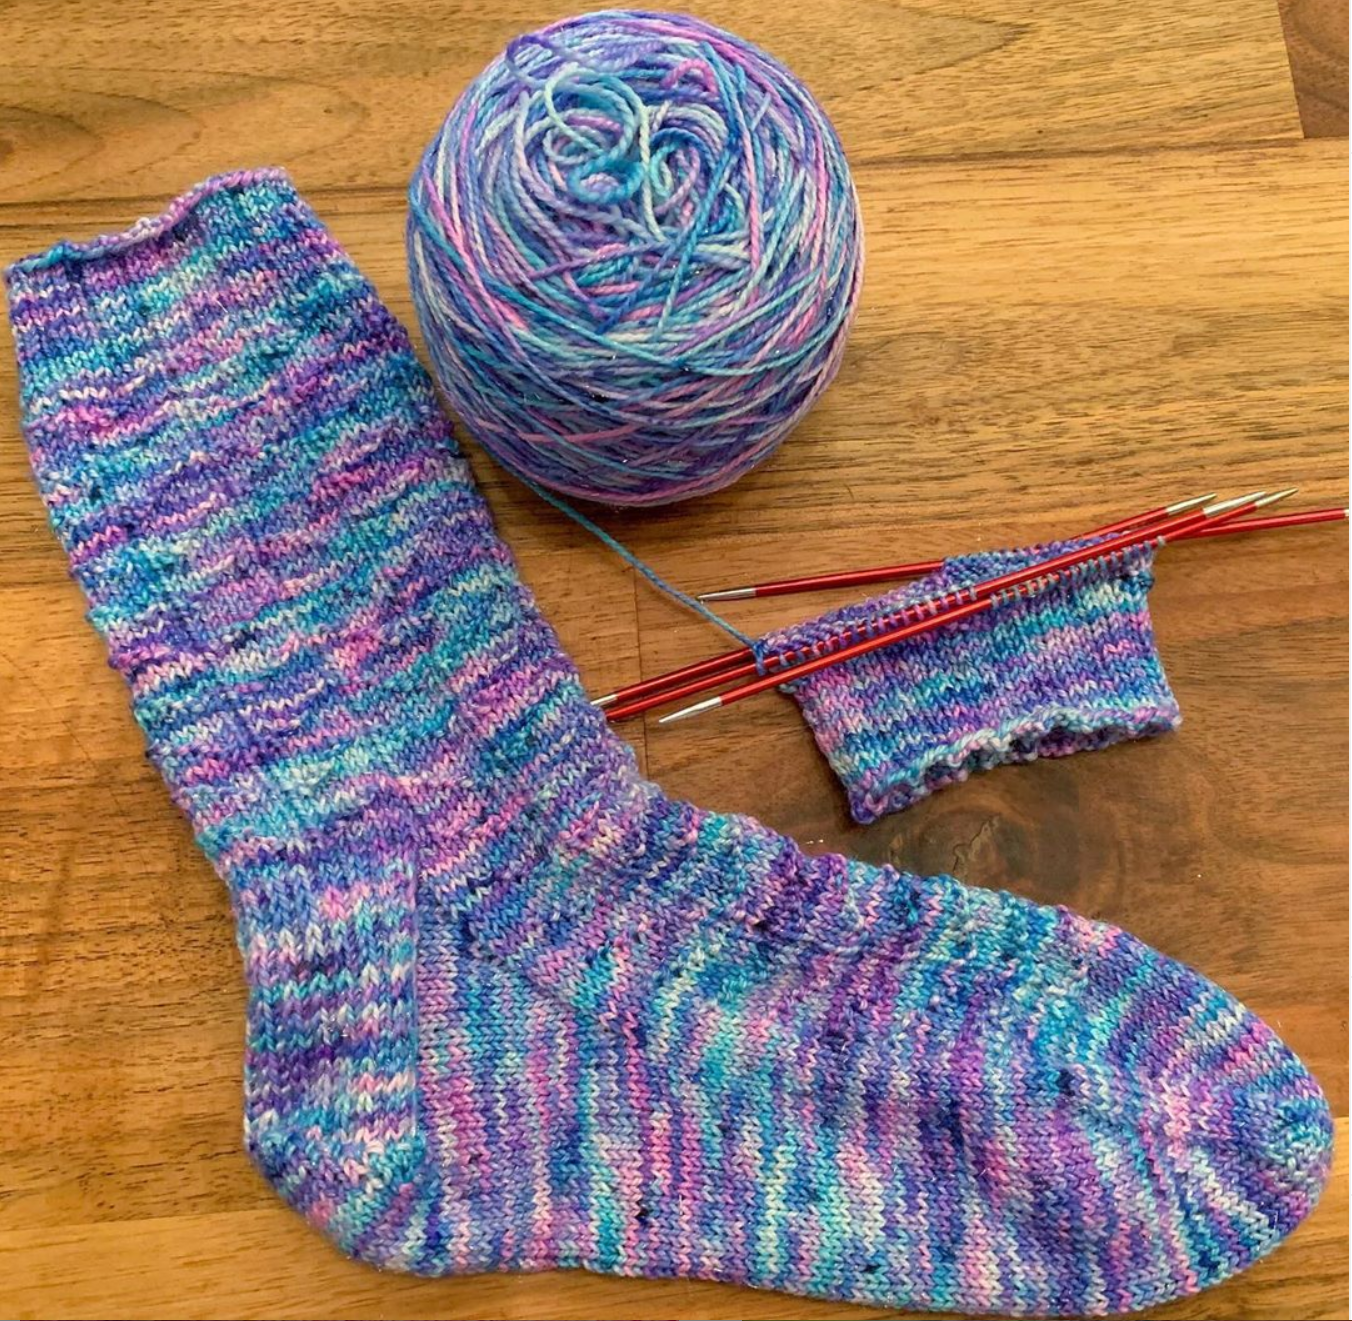 @renee_kies Snowfall Socks by @tabi.gandee